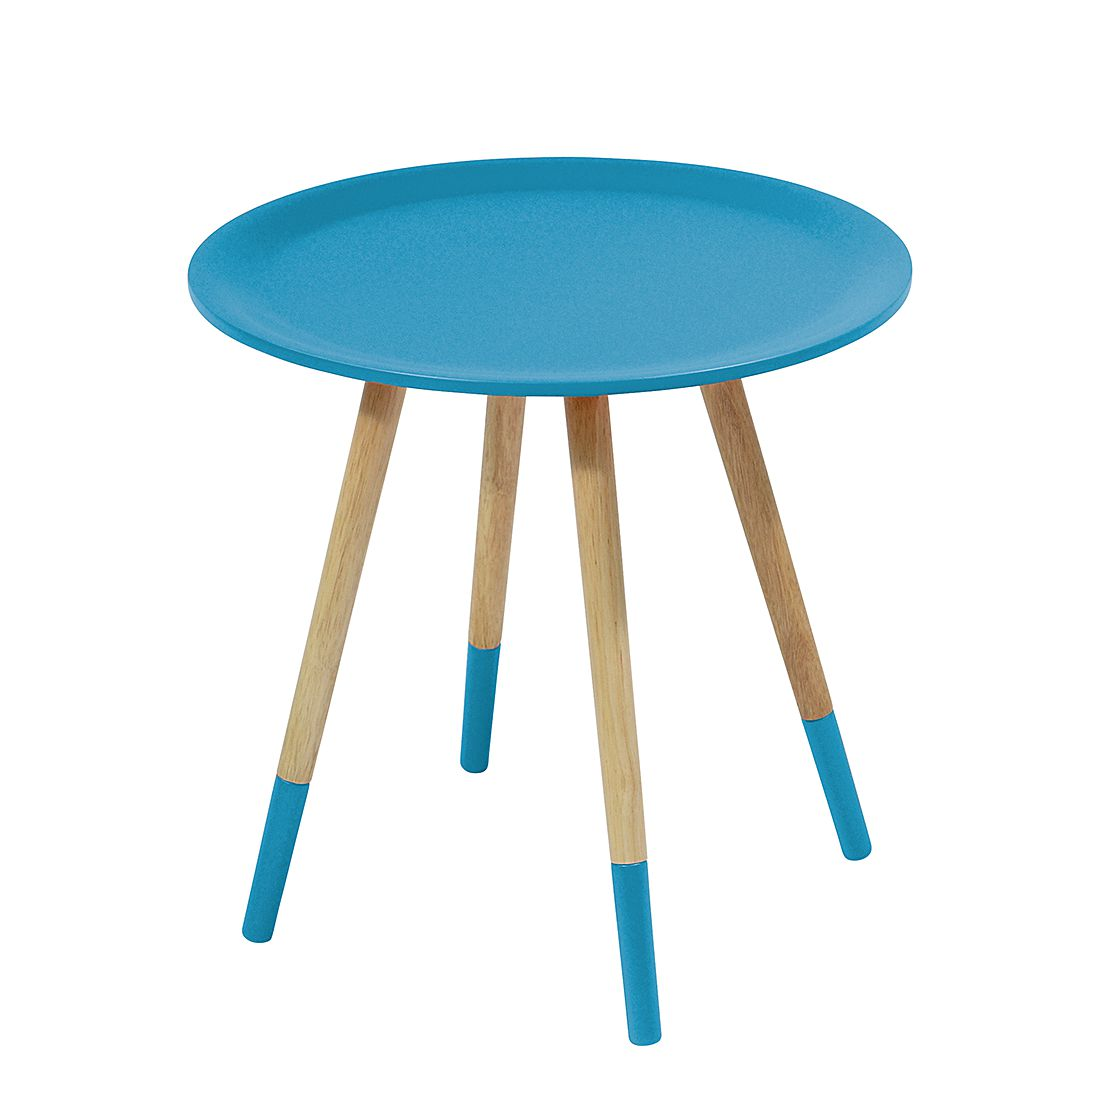 Home 24 - Table d appoint two tone - bleu, zuiver